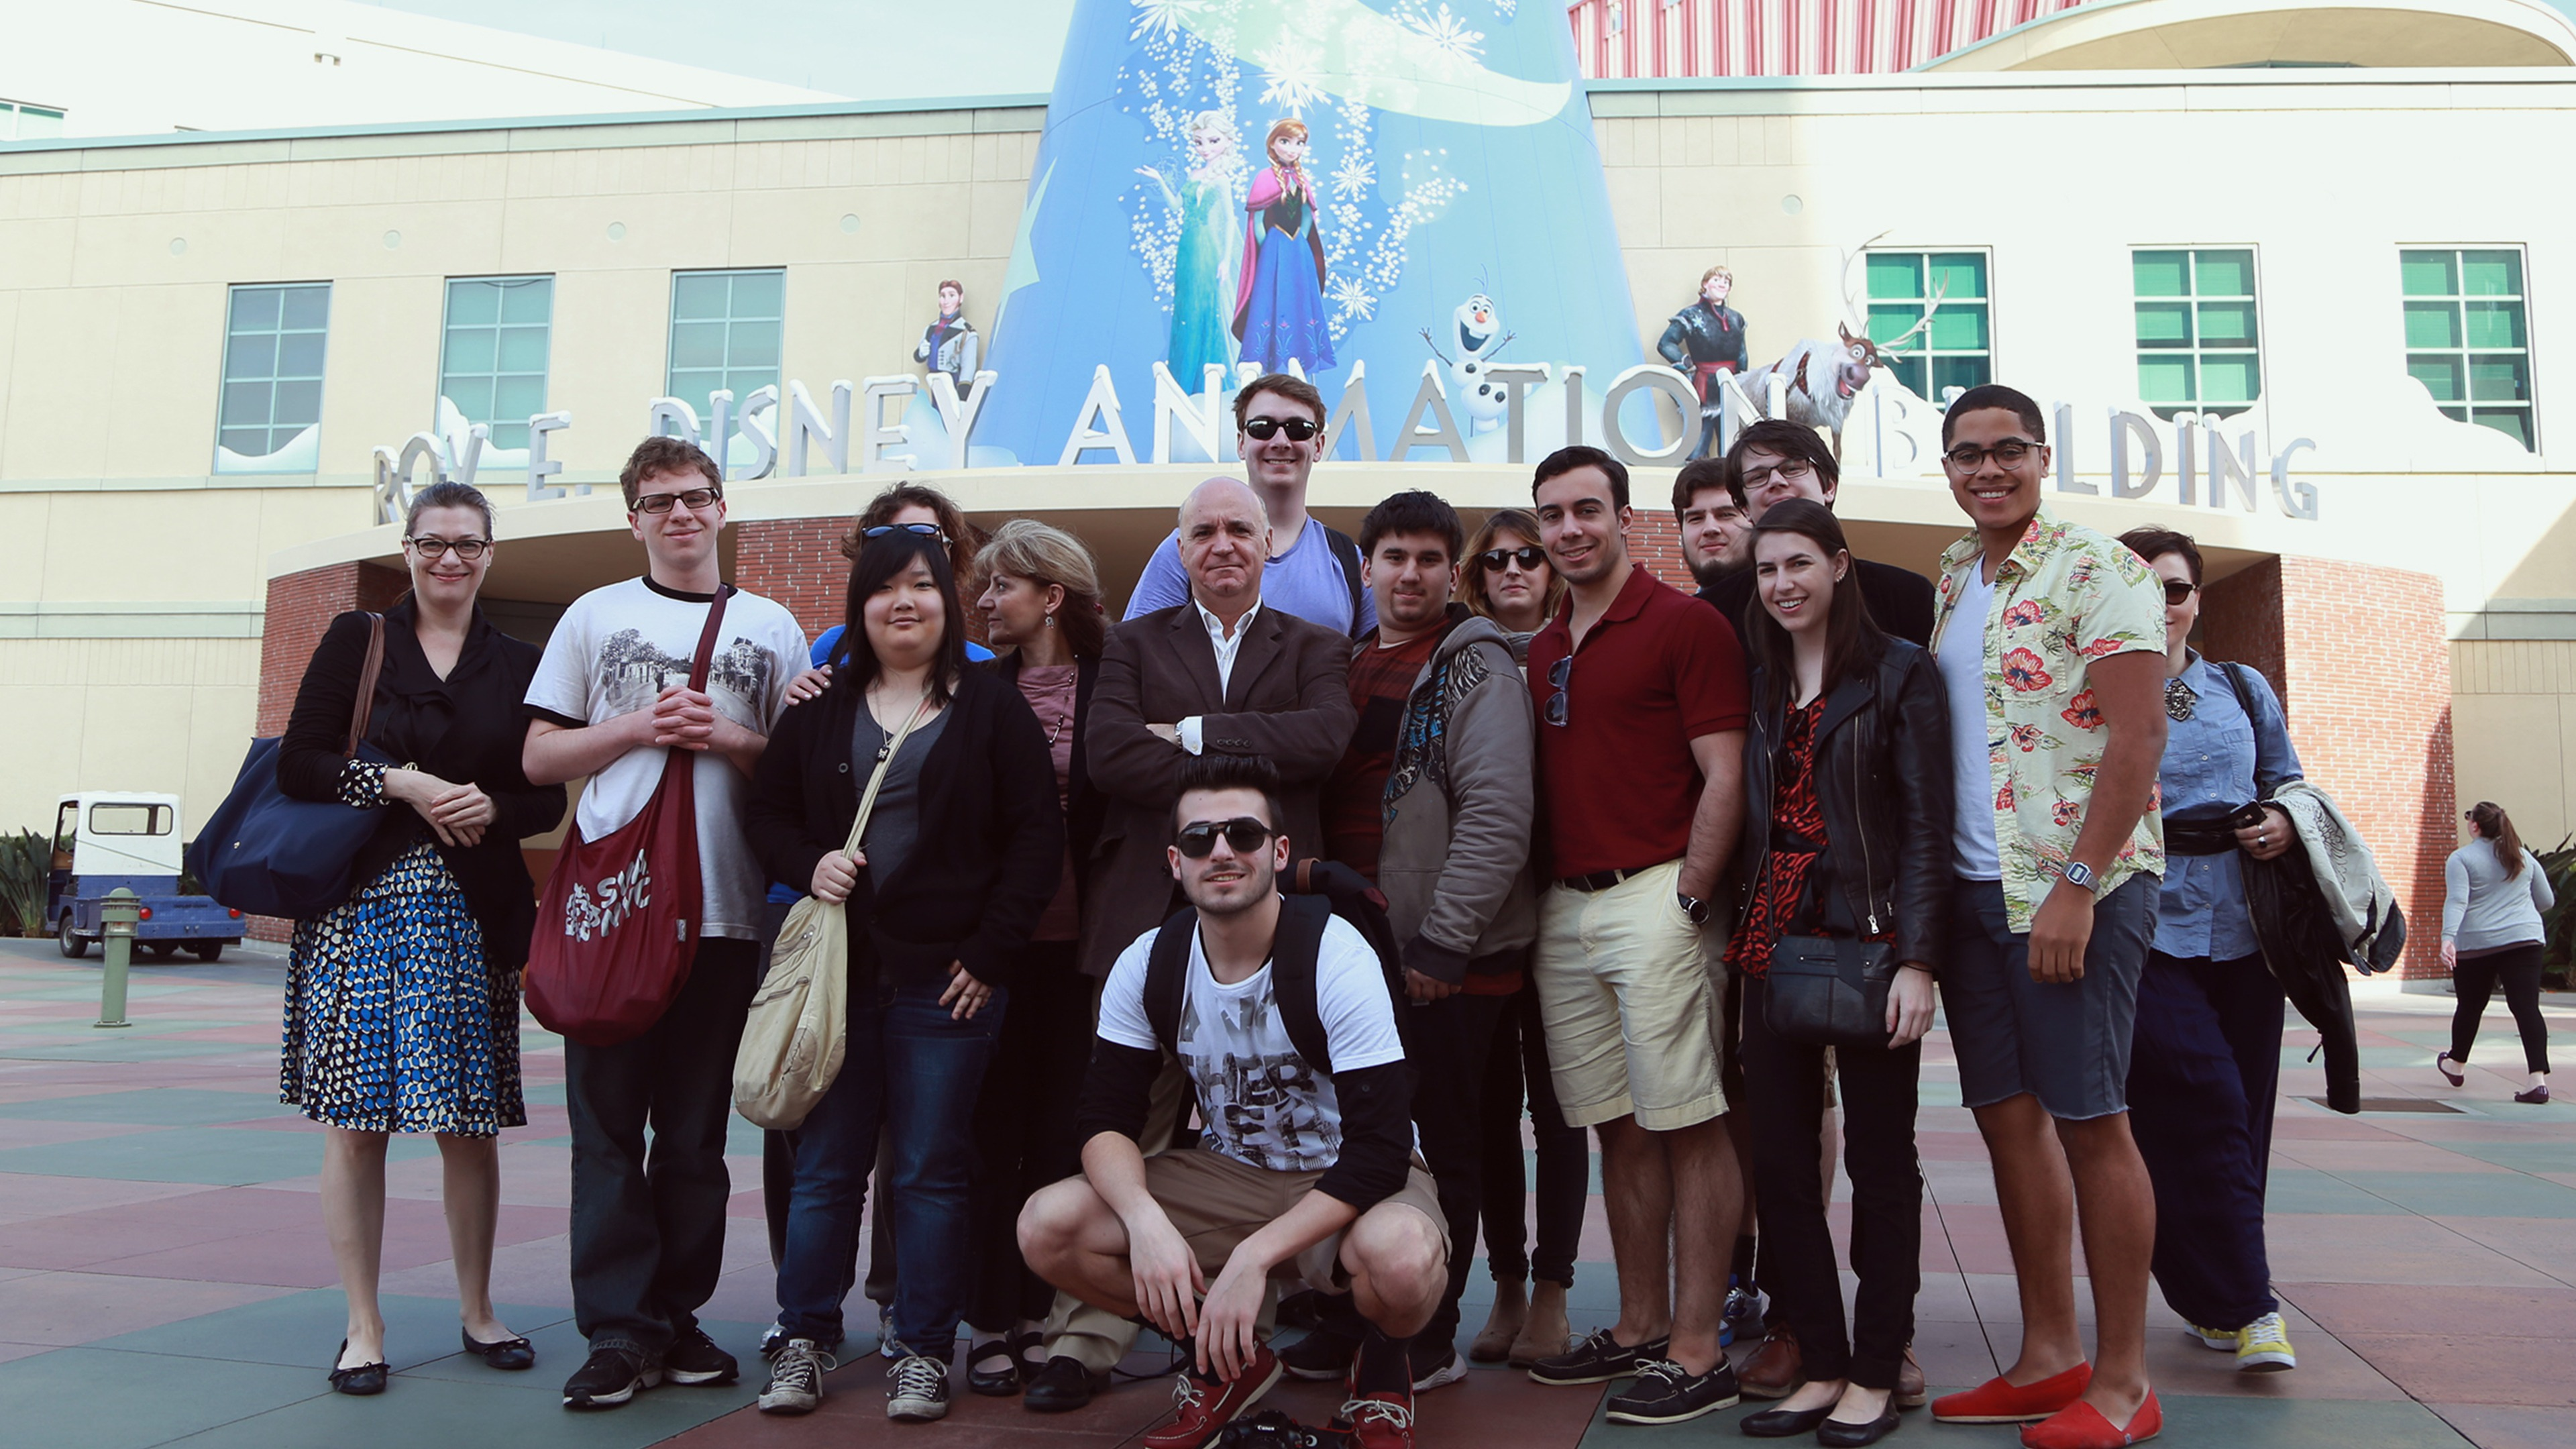 A group of students smiling outside of the Walt Disney Animation Studio entrance.